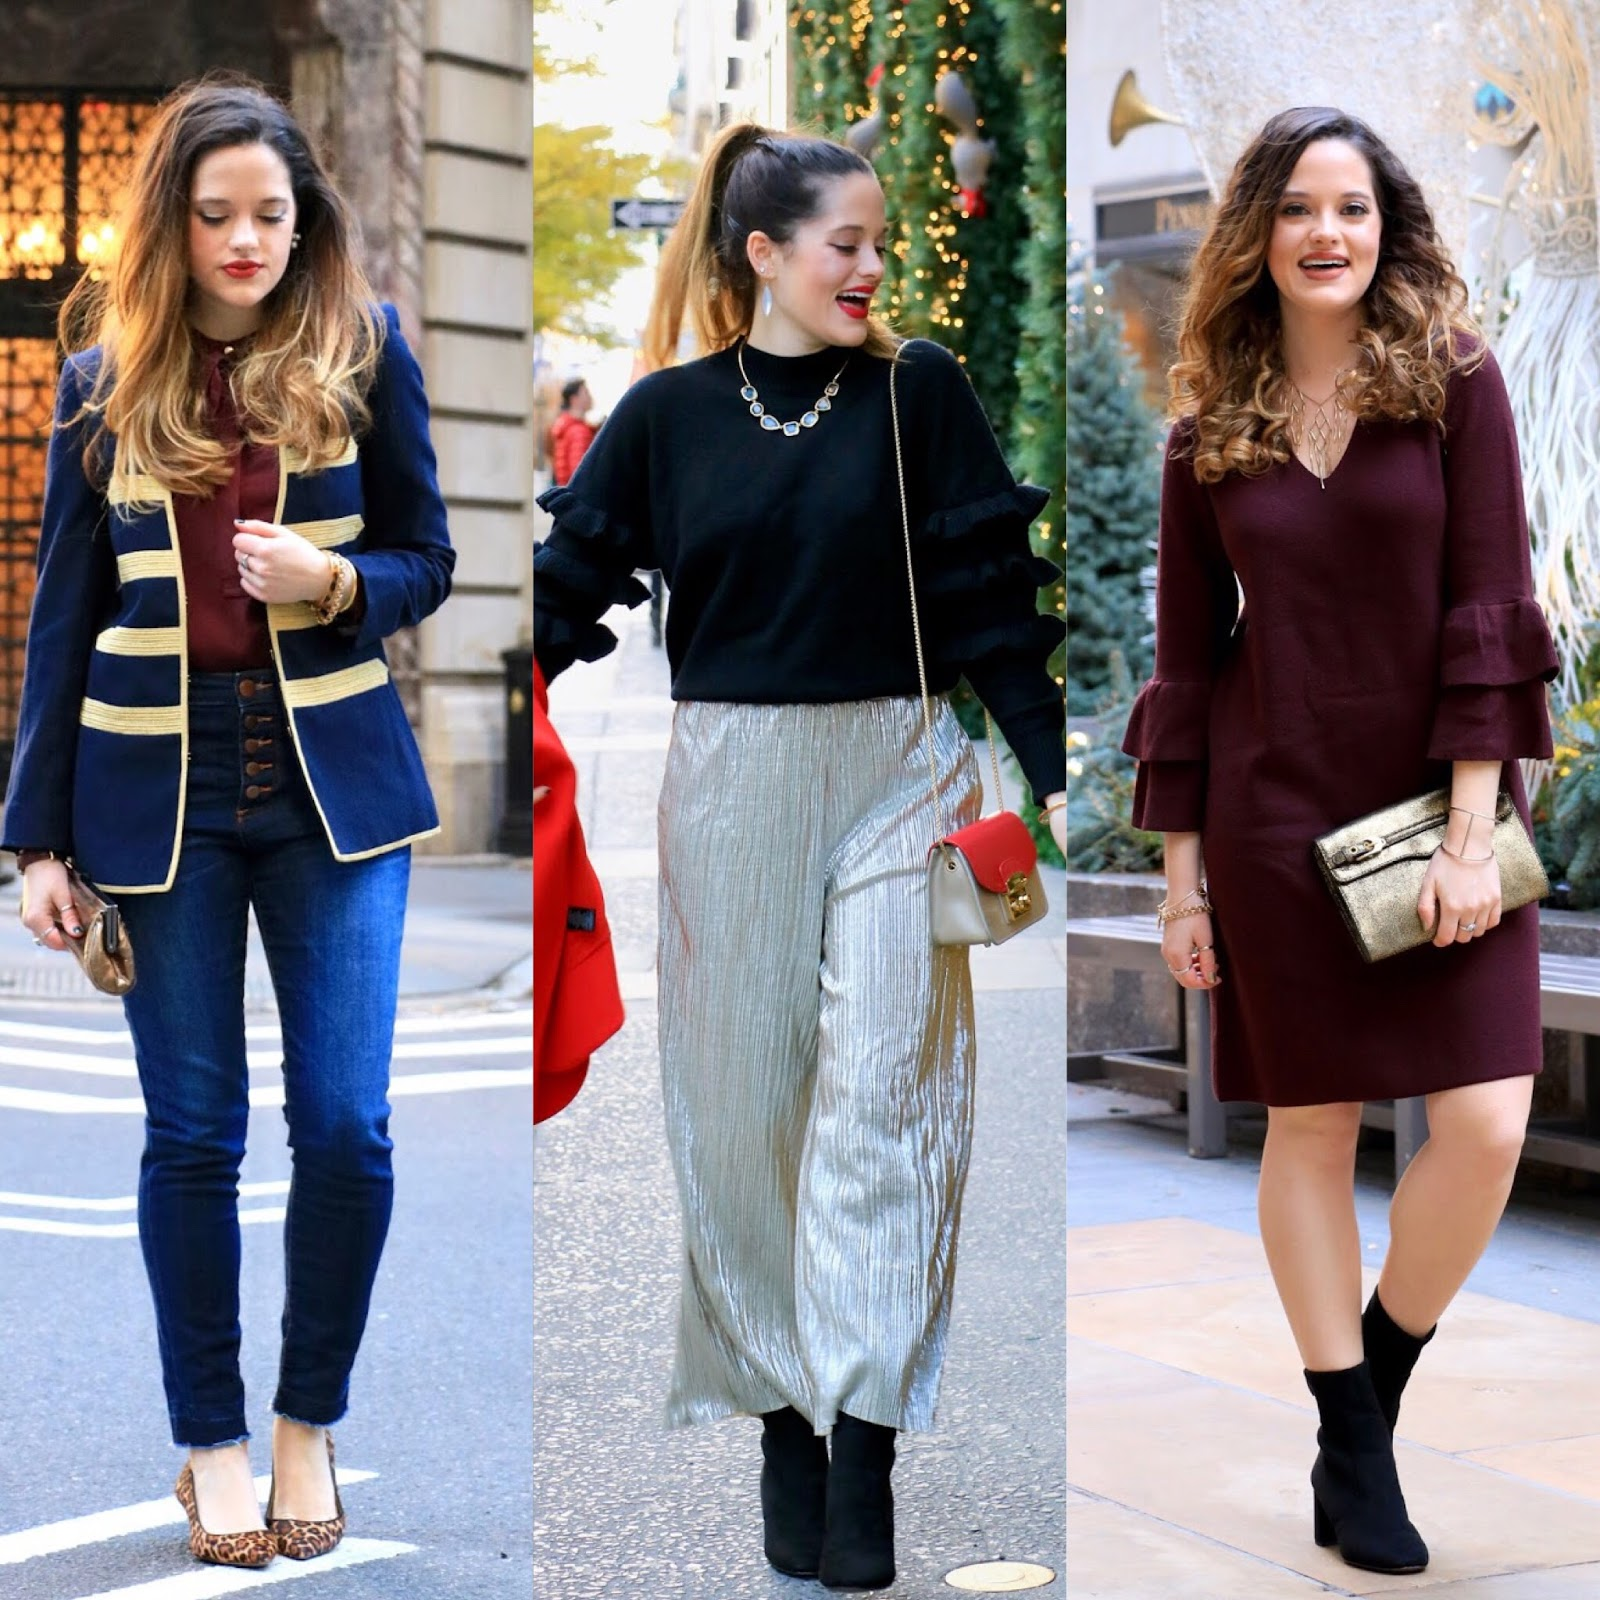 Holiday fashion from a fashion blogger